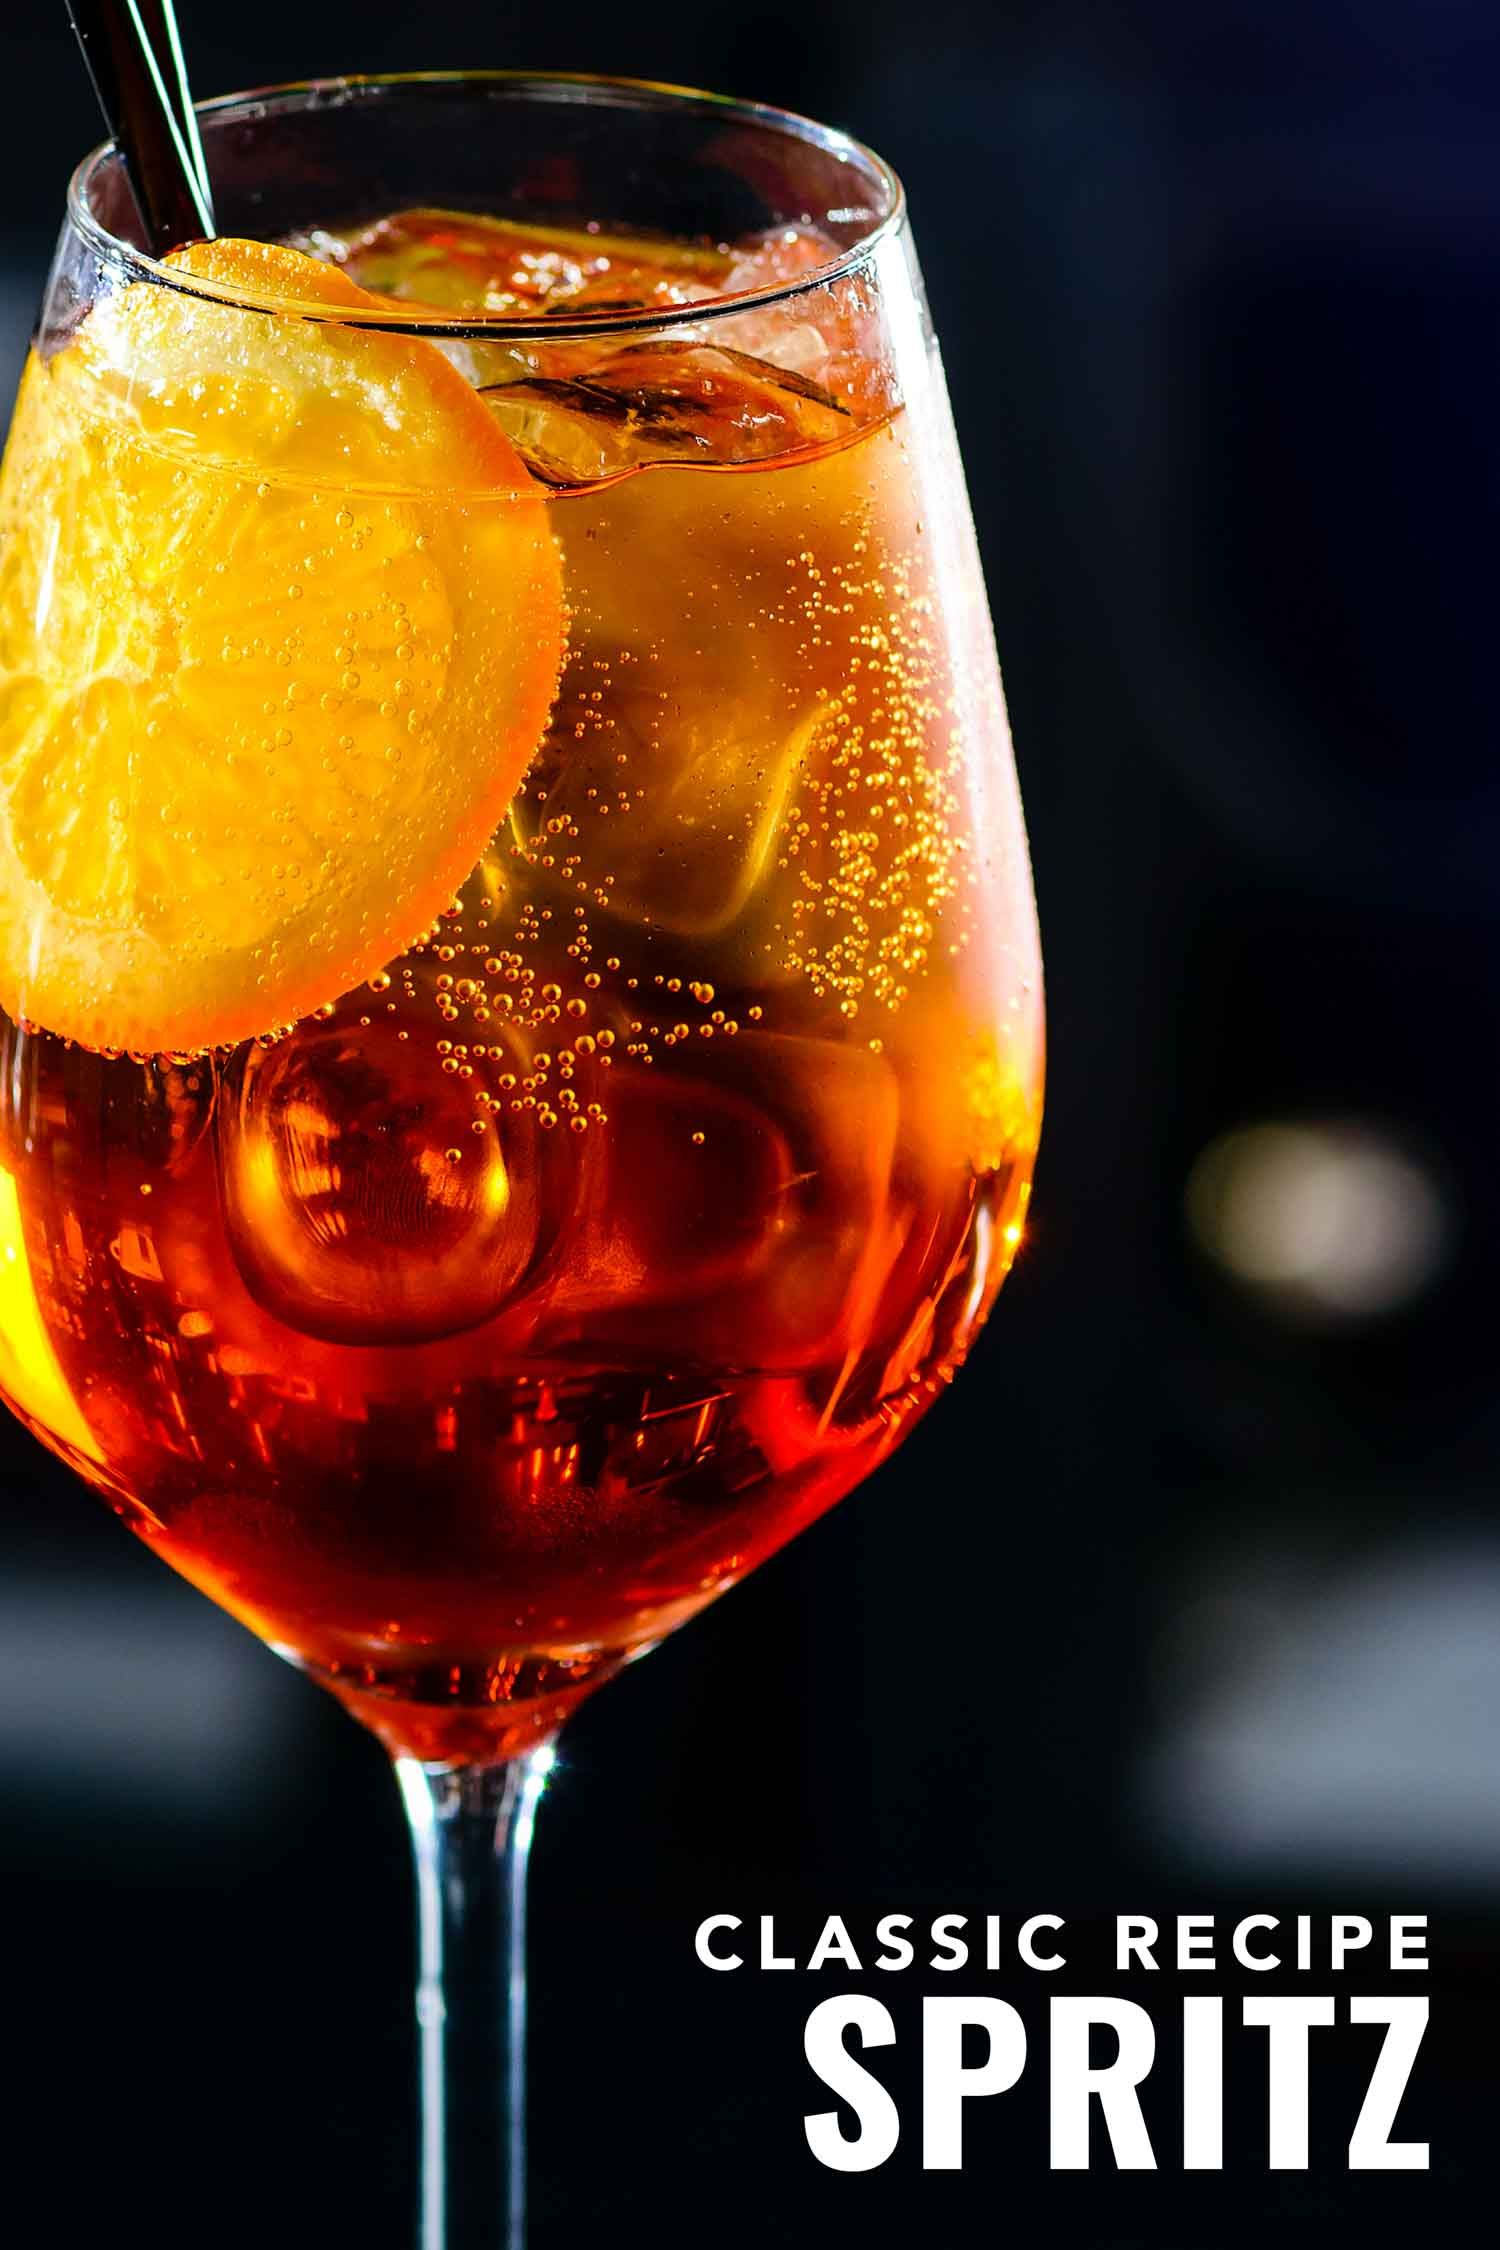 The Most Popular Drink In Italy Is The Spritz Cocktail Find Out Why It S So Popular And How To Make One If You Re Hea In 2020 Most Popular Drinks Spritz Drink